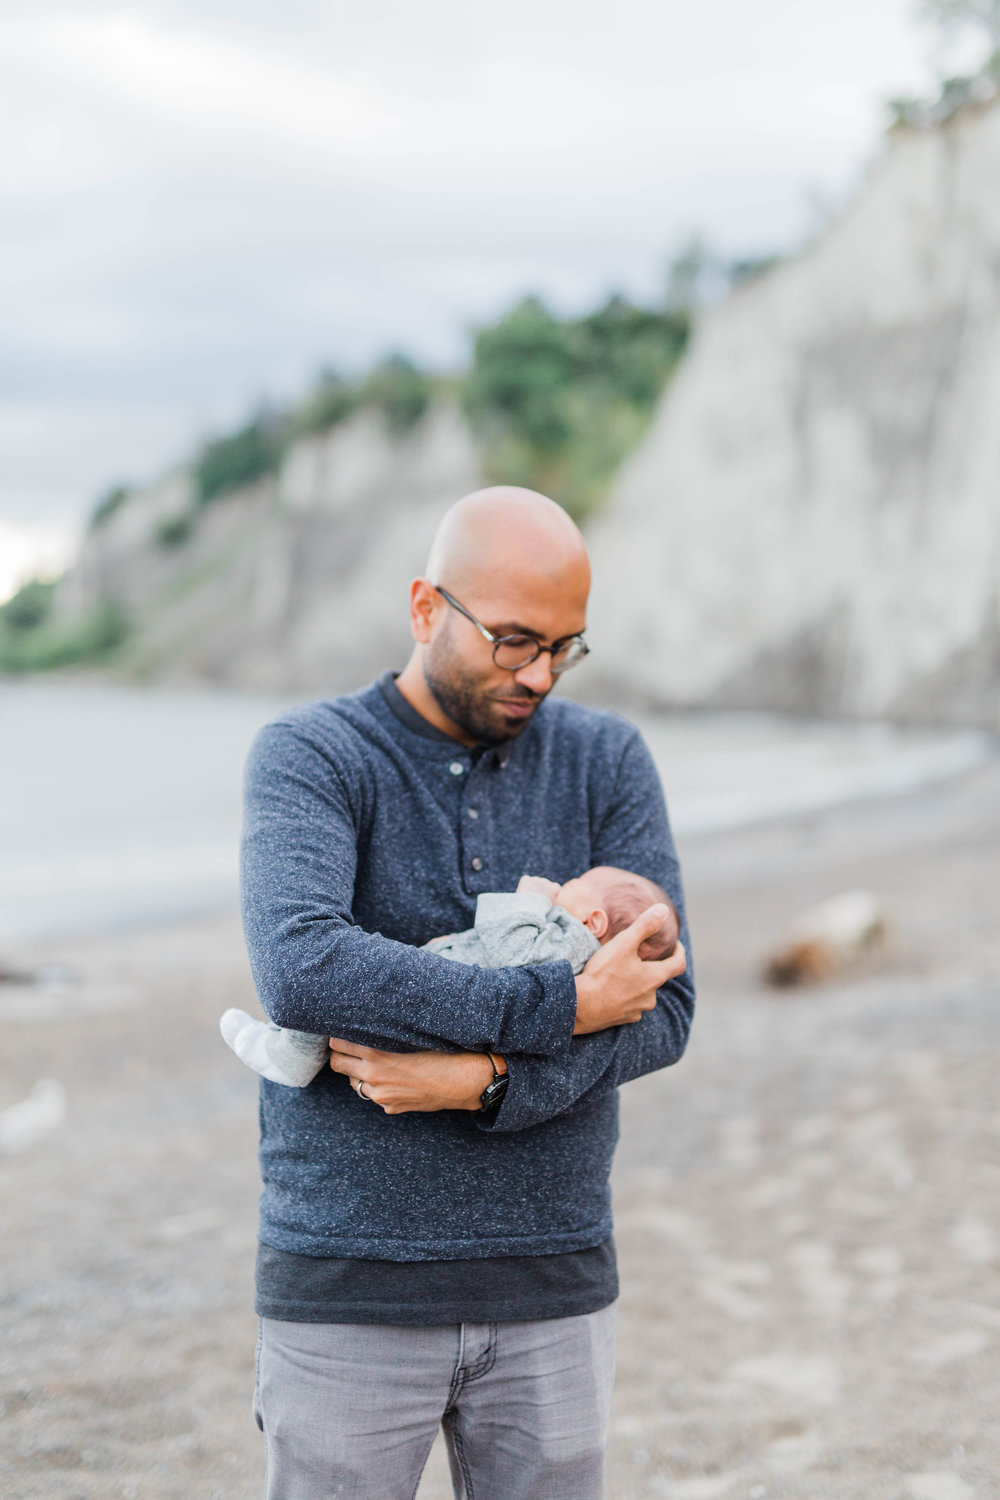 Danielle-Giroux_Lindsay-Sunil_Newborn-Session_Scarborough-Bluffs_-0064.jpg